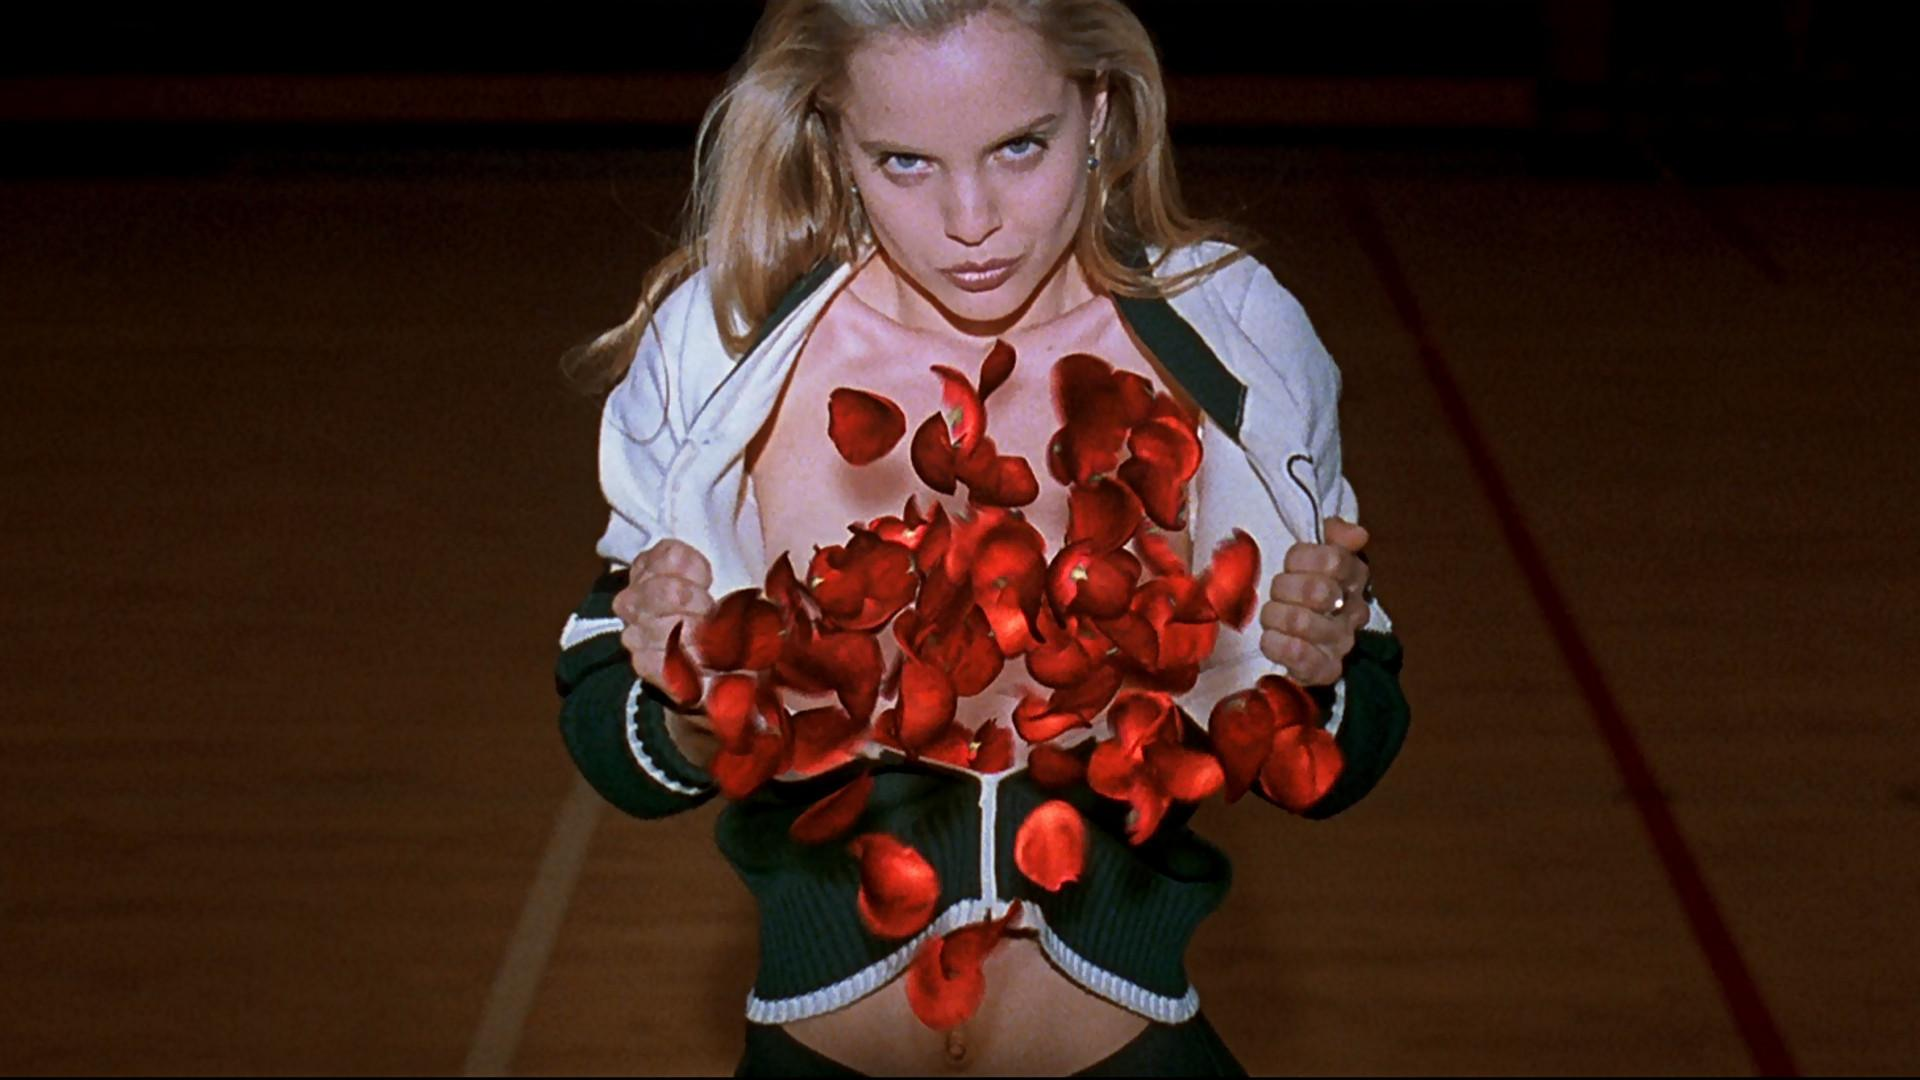 American Beauty Wallpapers High Quality Download 1920x1080